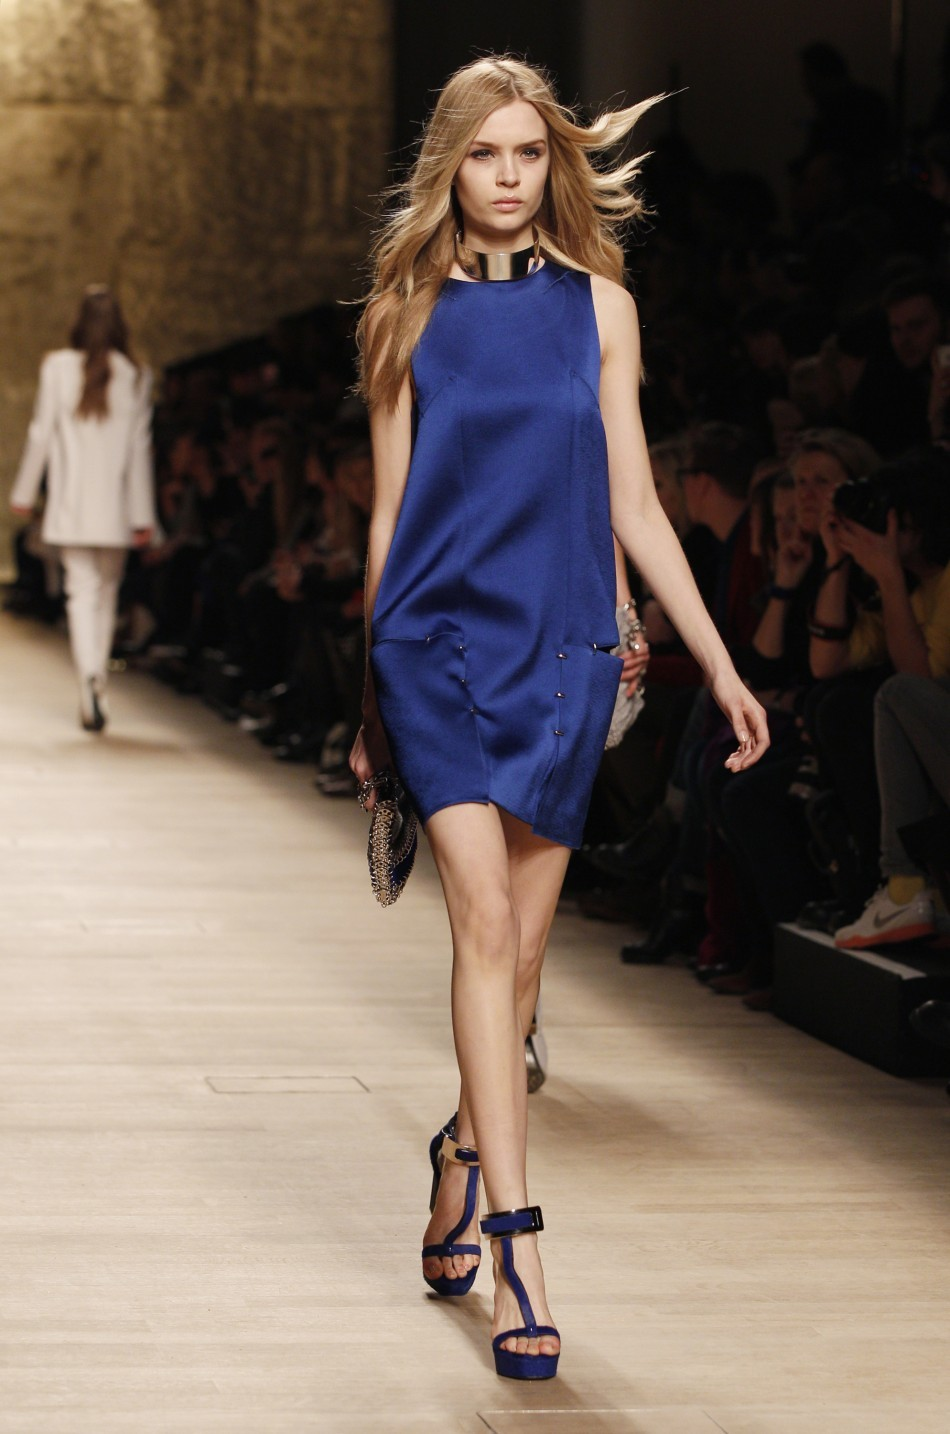 Paris Fashion Week: Manish Aroras' Creation (PHOTOS)